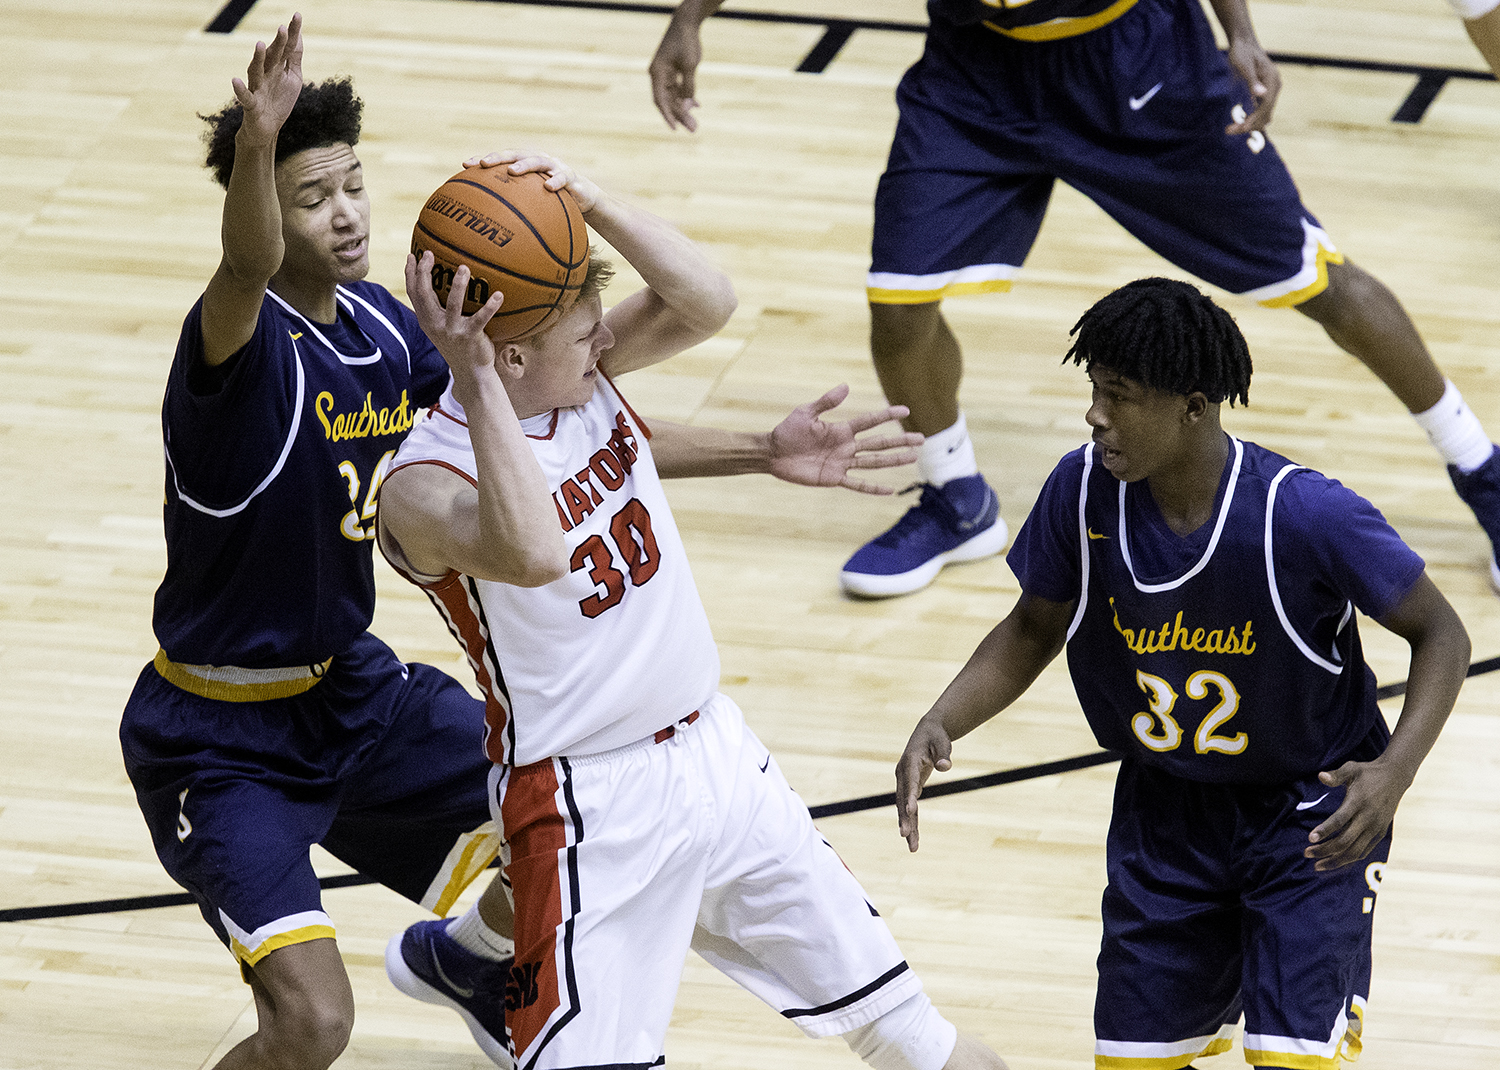 Springfield's Will Reiser looks for help under pressure from Southeast defenders during the Boys City Tournament at the Bank of Springfield Center Friday, Jan. 19, 2018. [Ted Schurter/The State Journal-Register]